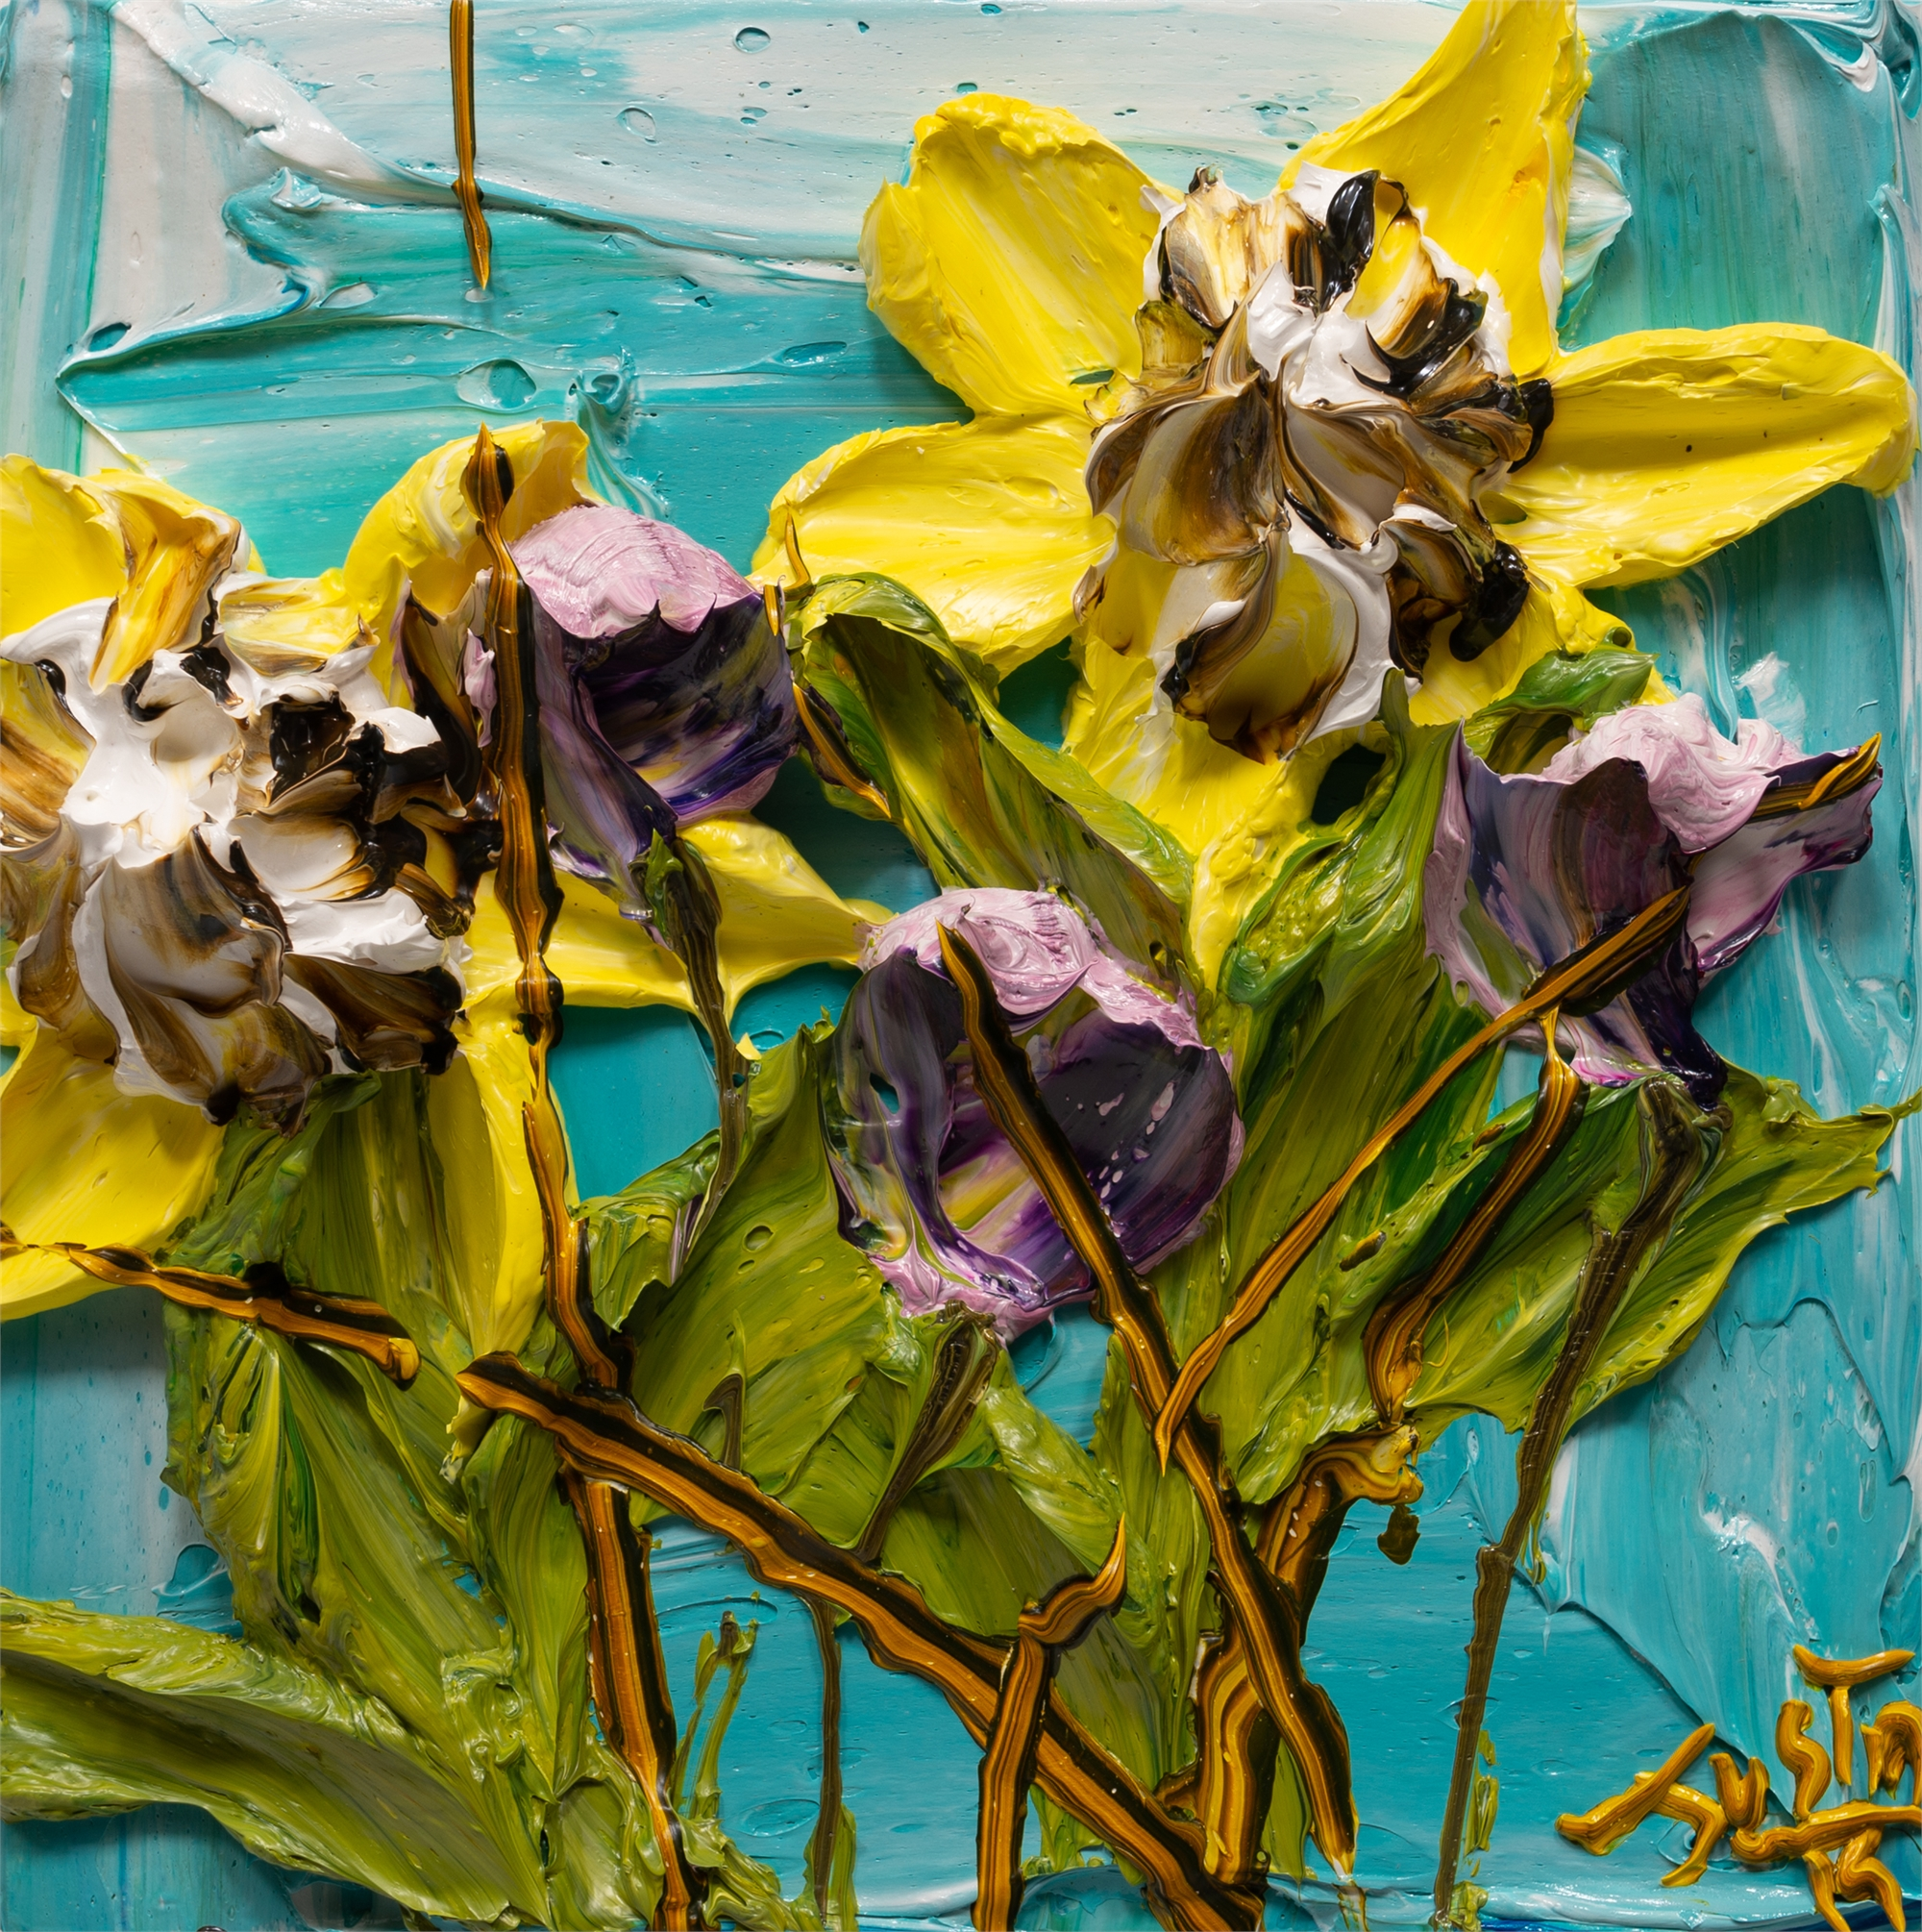 SUNFLOWERS-SF-12X12-2019-193 by JUSTIN GAFFREY